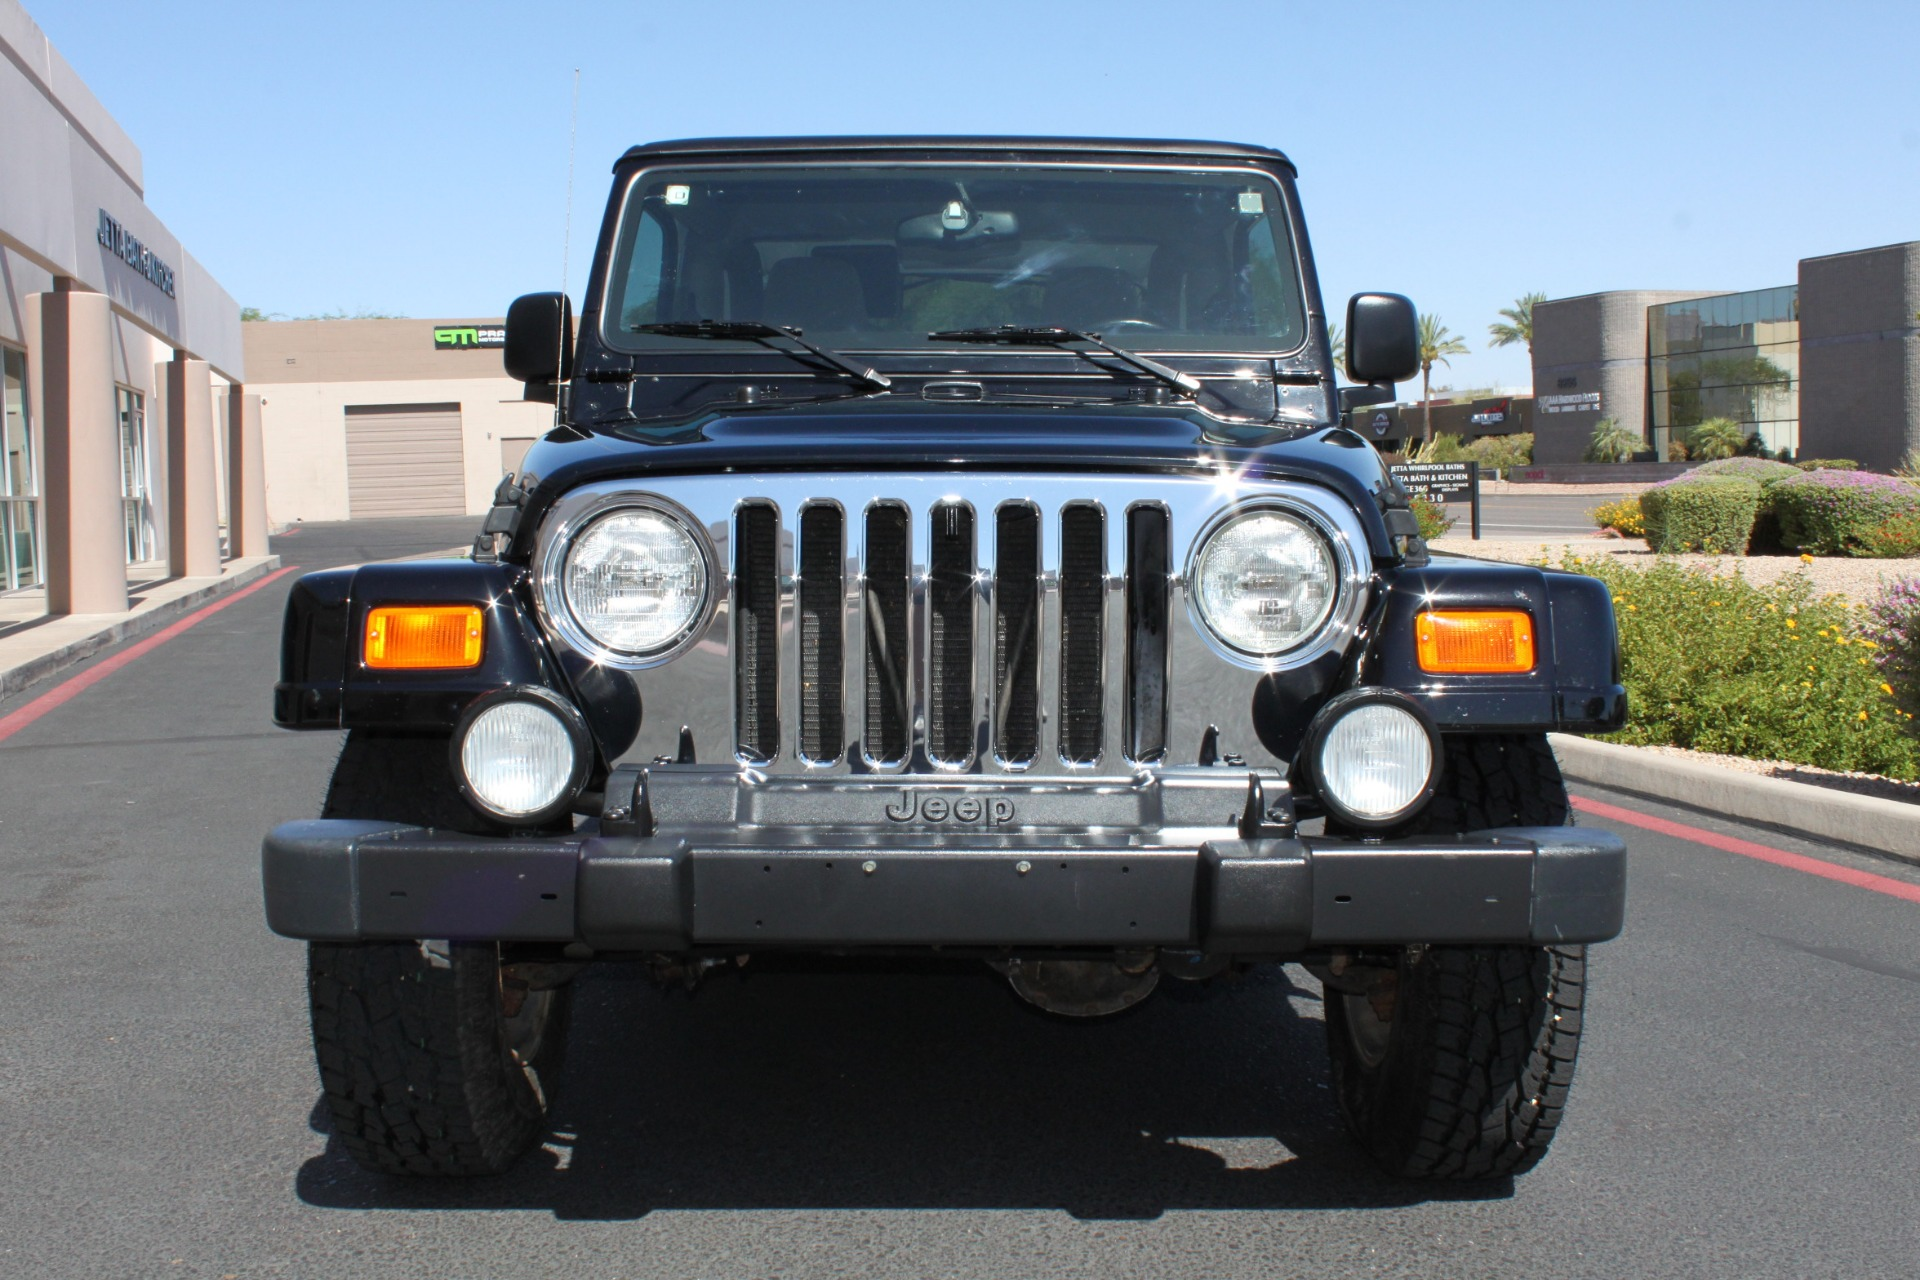 Used-2003-Jeep-Wrangler-Sahara-BMW